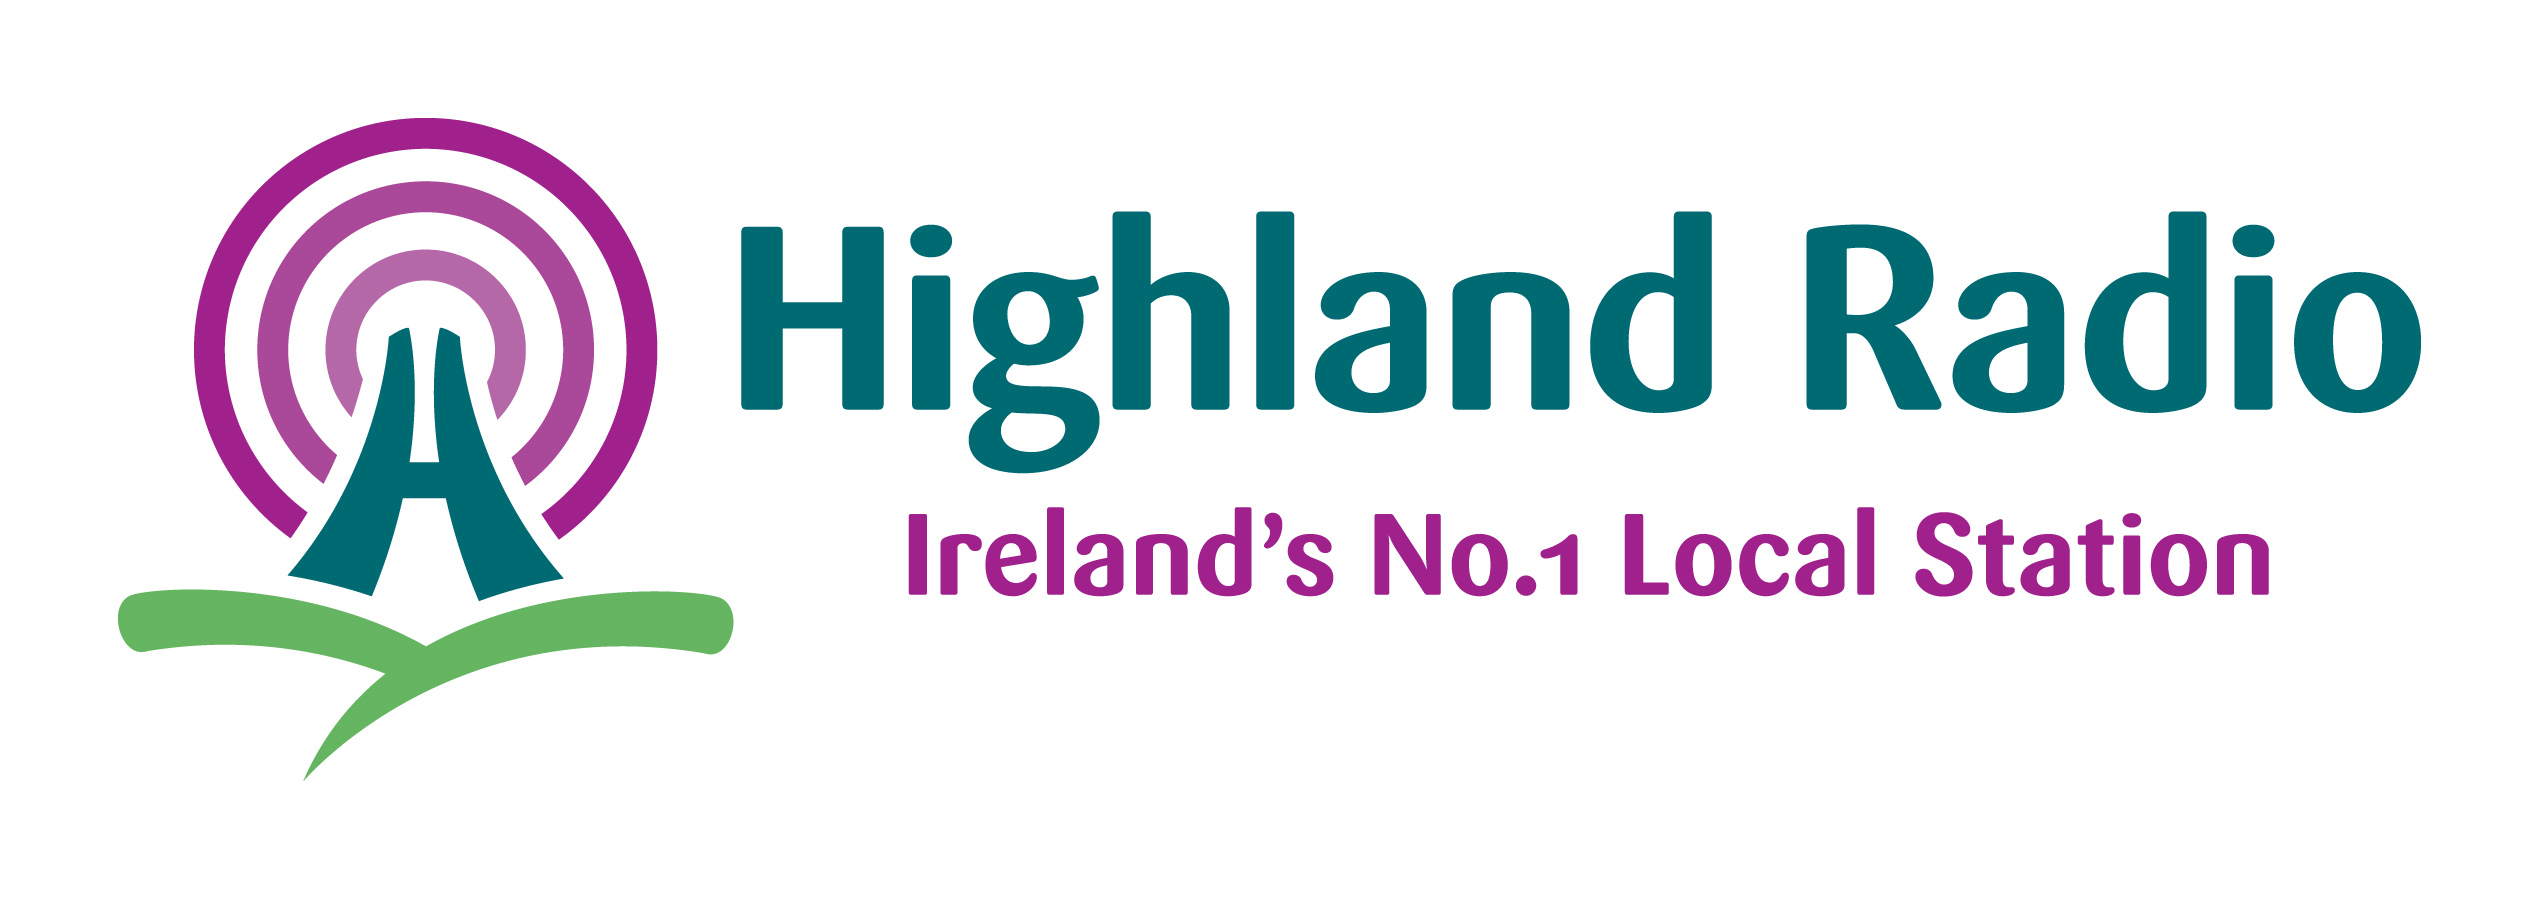 Professor Kevin Curran, Ulster University in an interview on Highland Radio discussing the Minister for Housing who survived the Sinn Féin motion of no confidence, the move to reduce the VAT rate from 13.5% to 9% and the Irish Presidential Elections 2018.